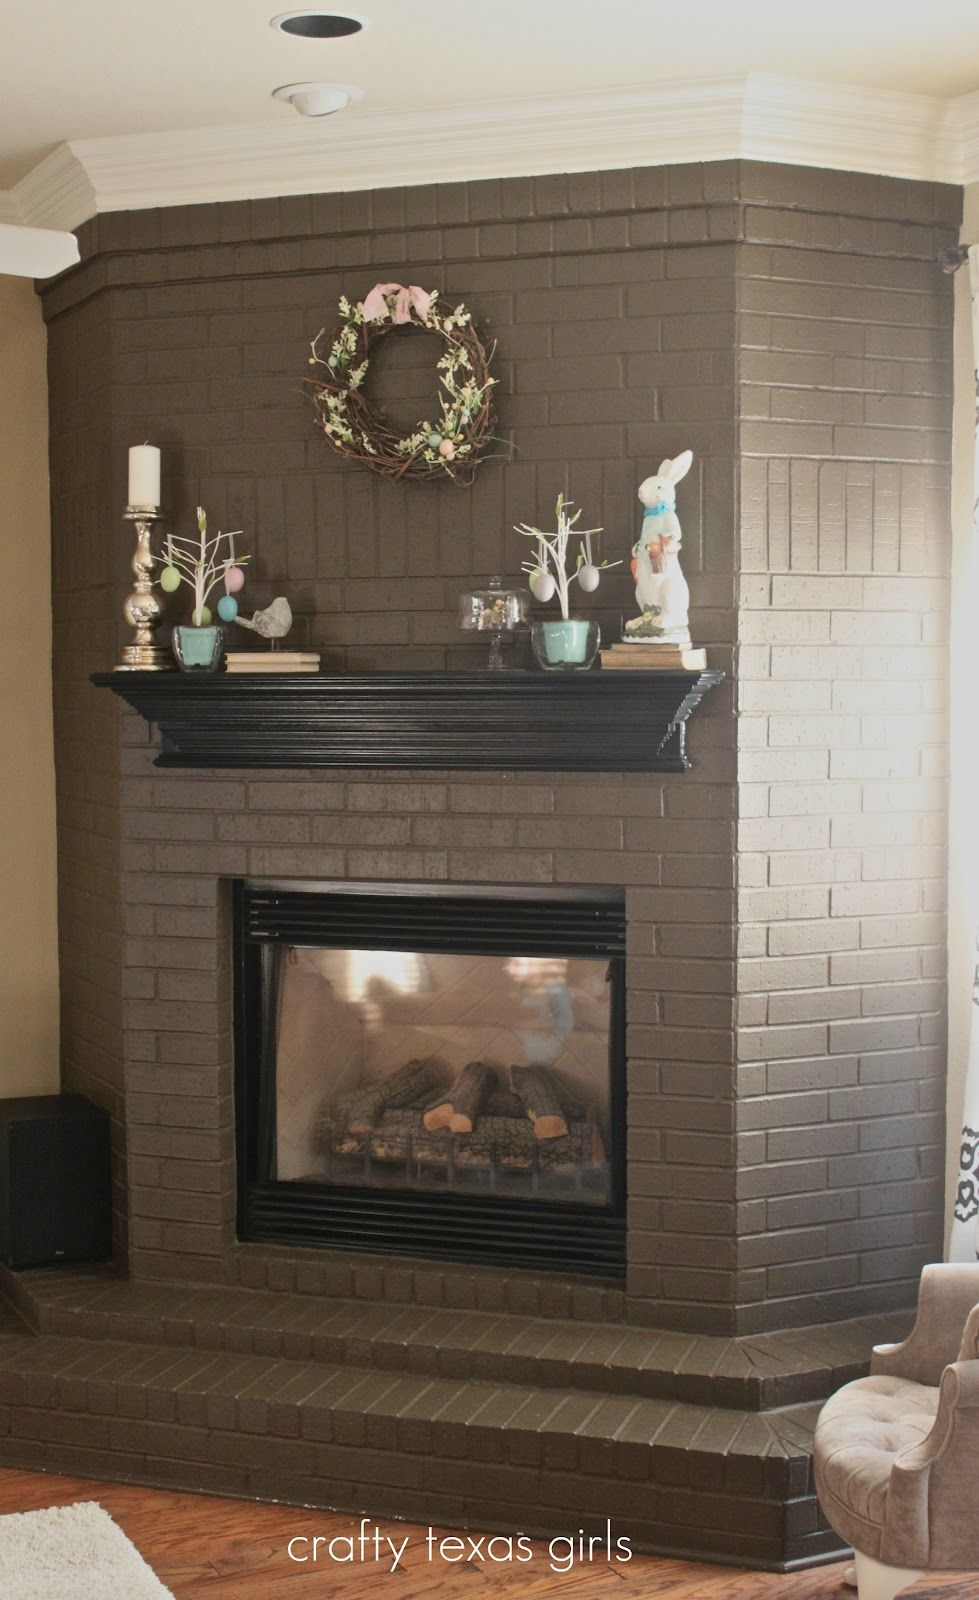 wood chimneywood convert fire old fireplace your burning into photo gas a chimney firebox